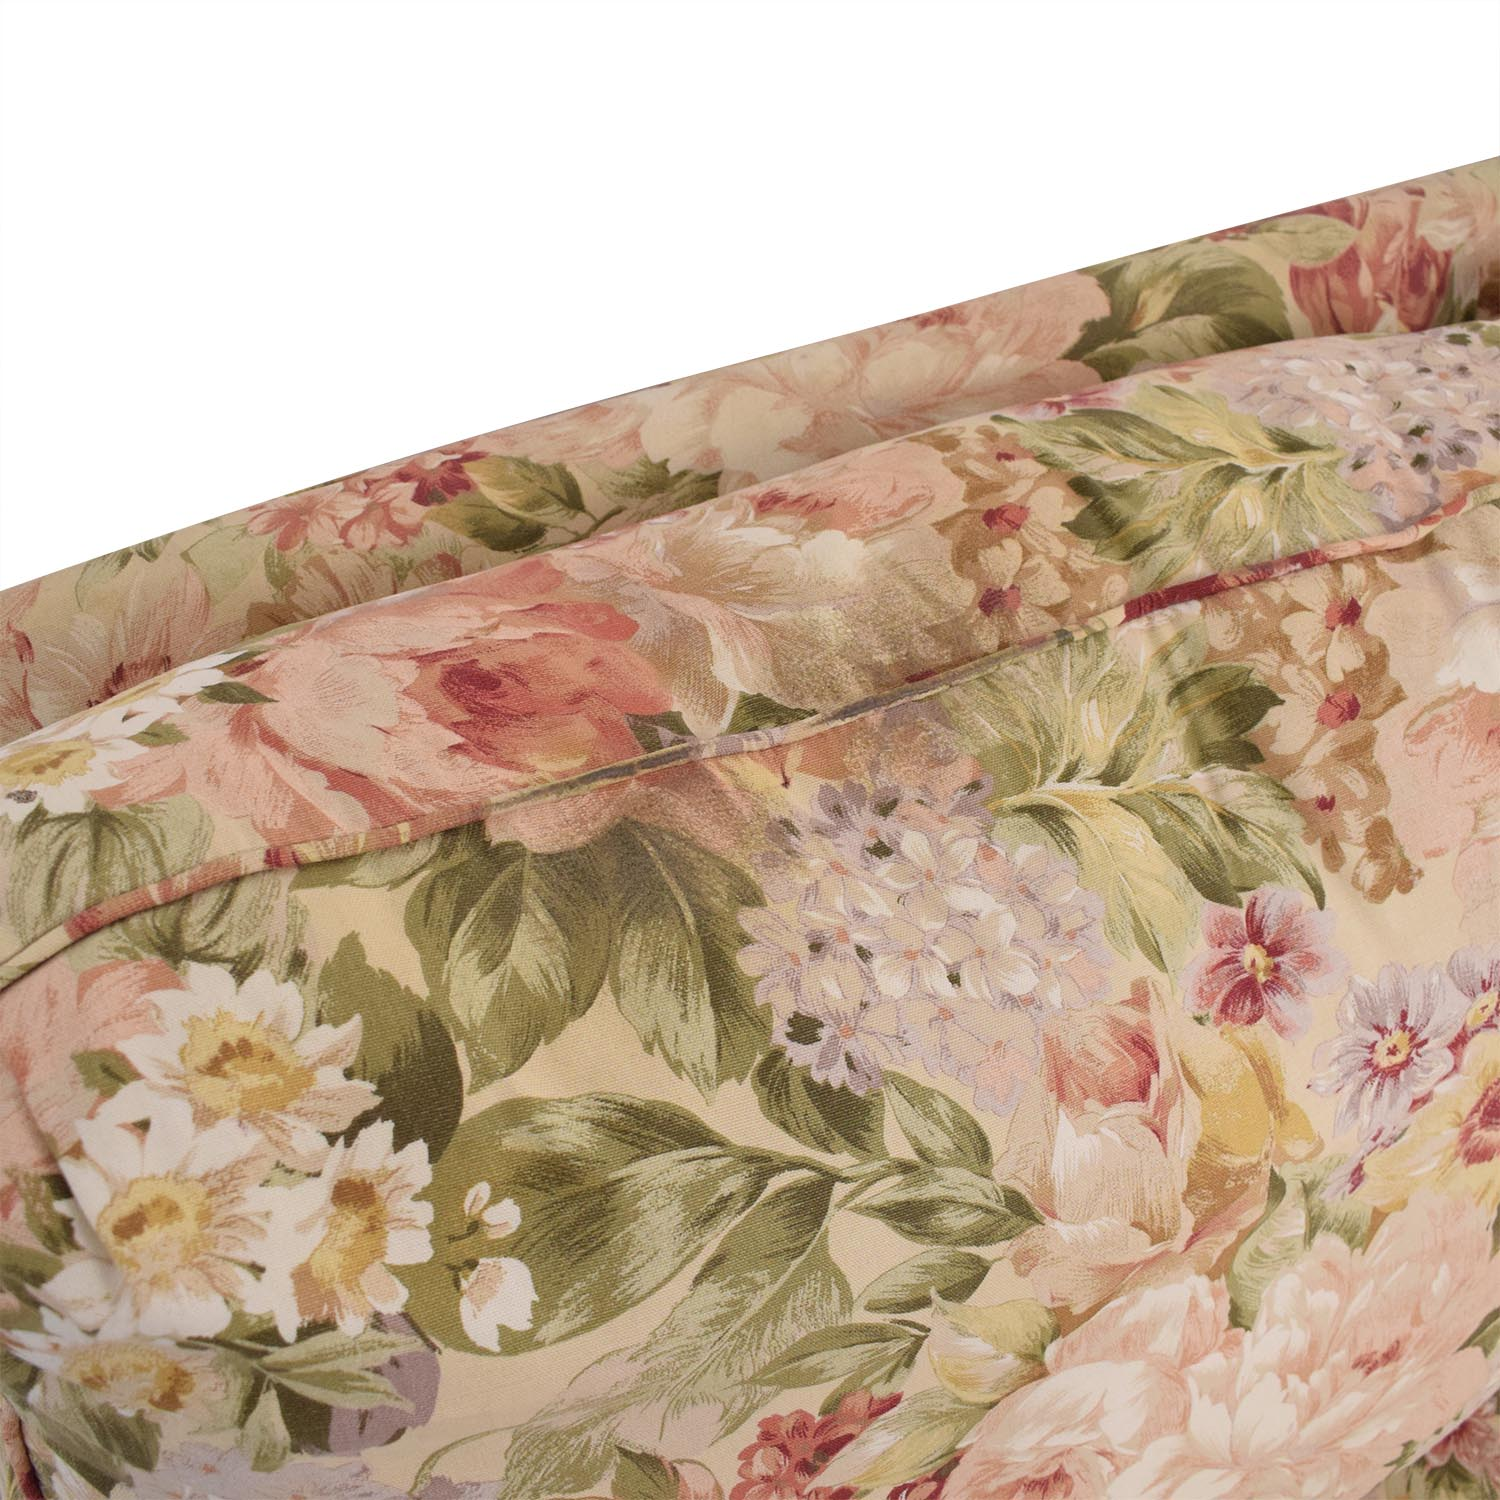 Ethan Allen Ethan Allen Floral Slipcovered Sofa ct